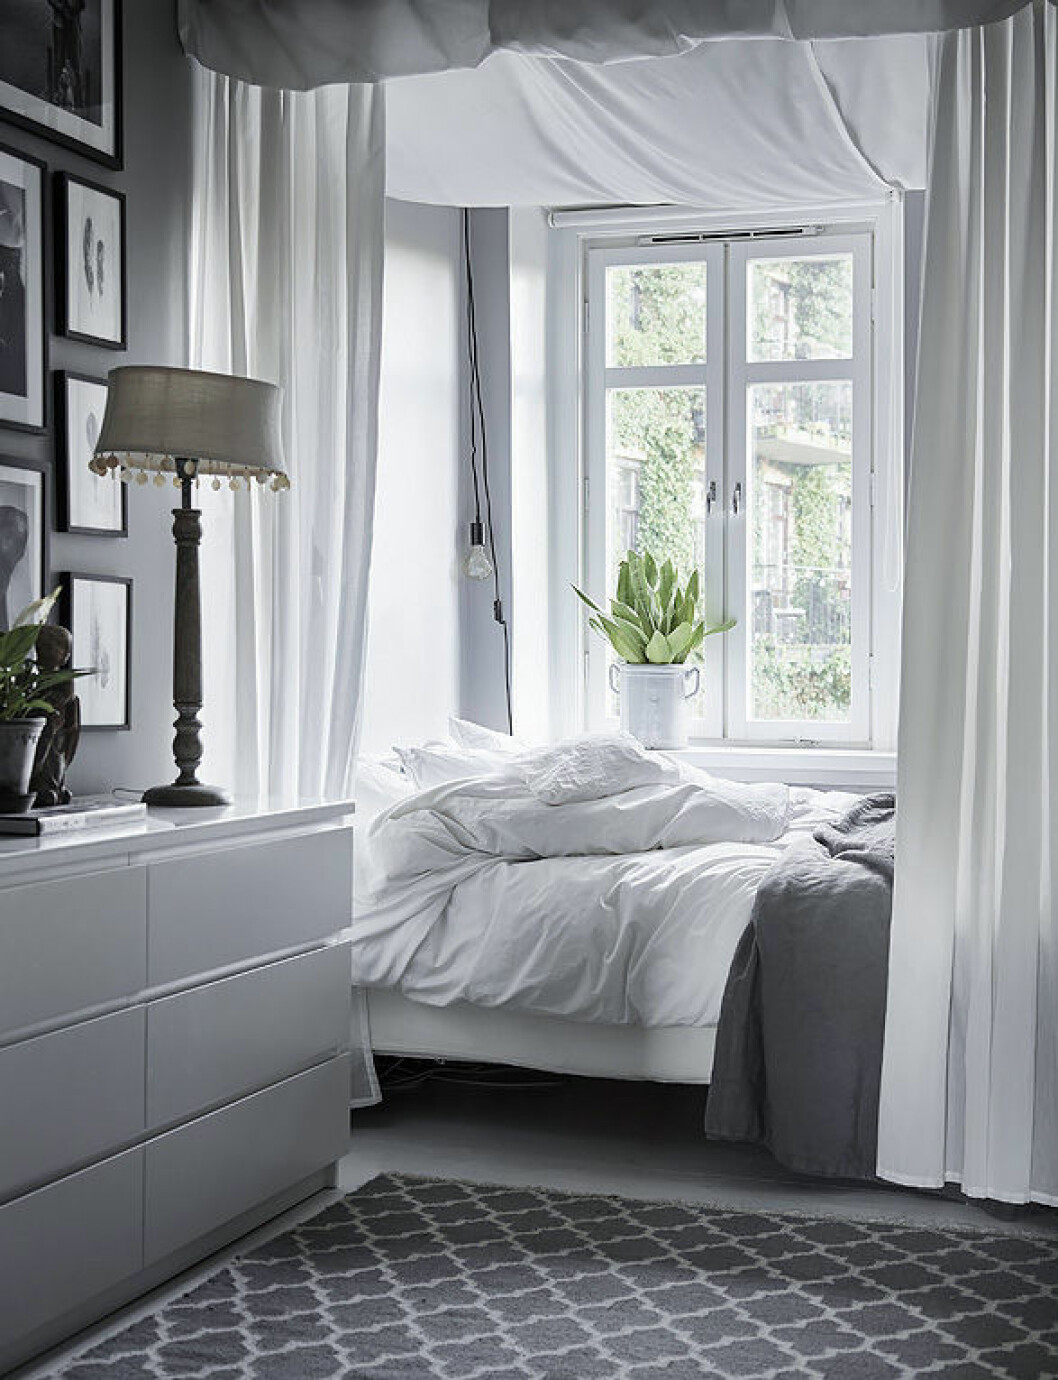 Cosy bedroom with grey and white colours. Fabric over the bed. Scandinavian interior decoration ideas and inspiration.